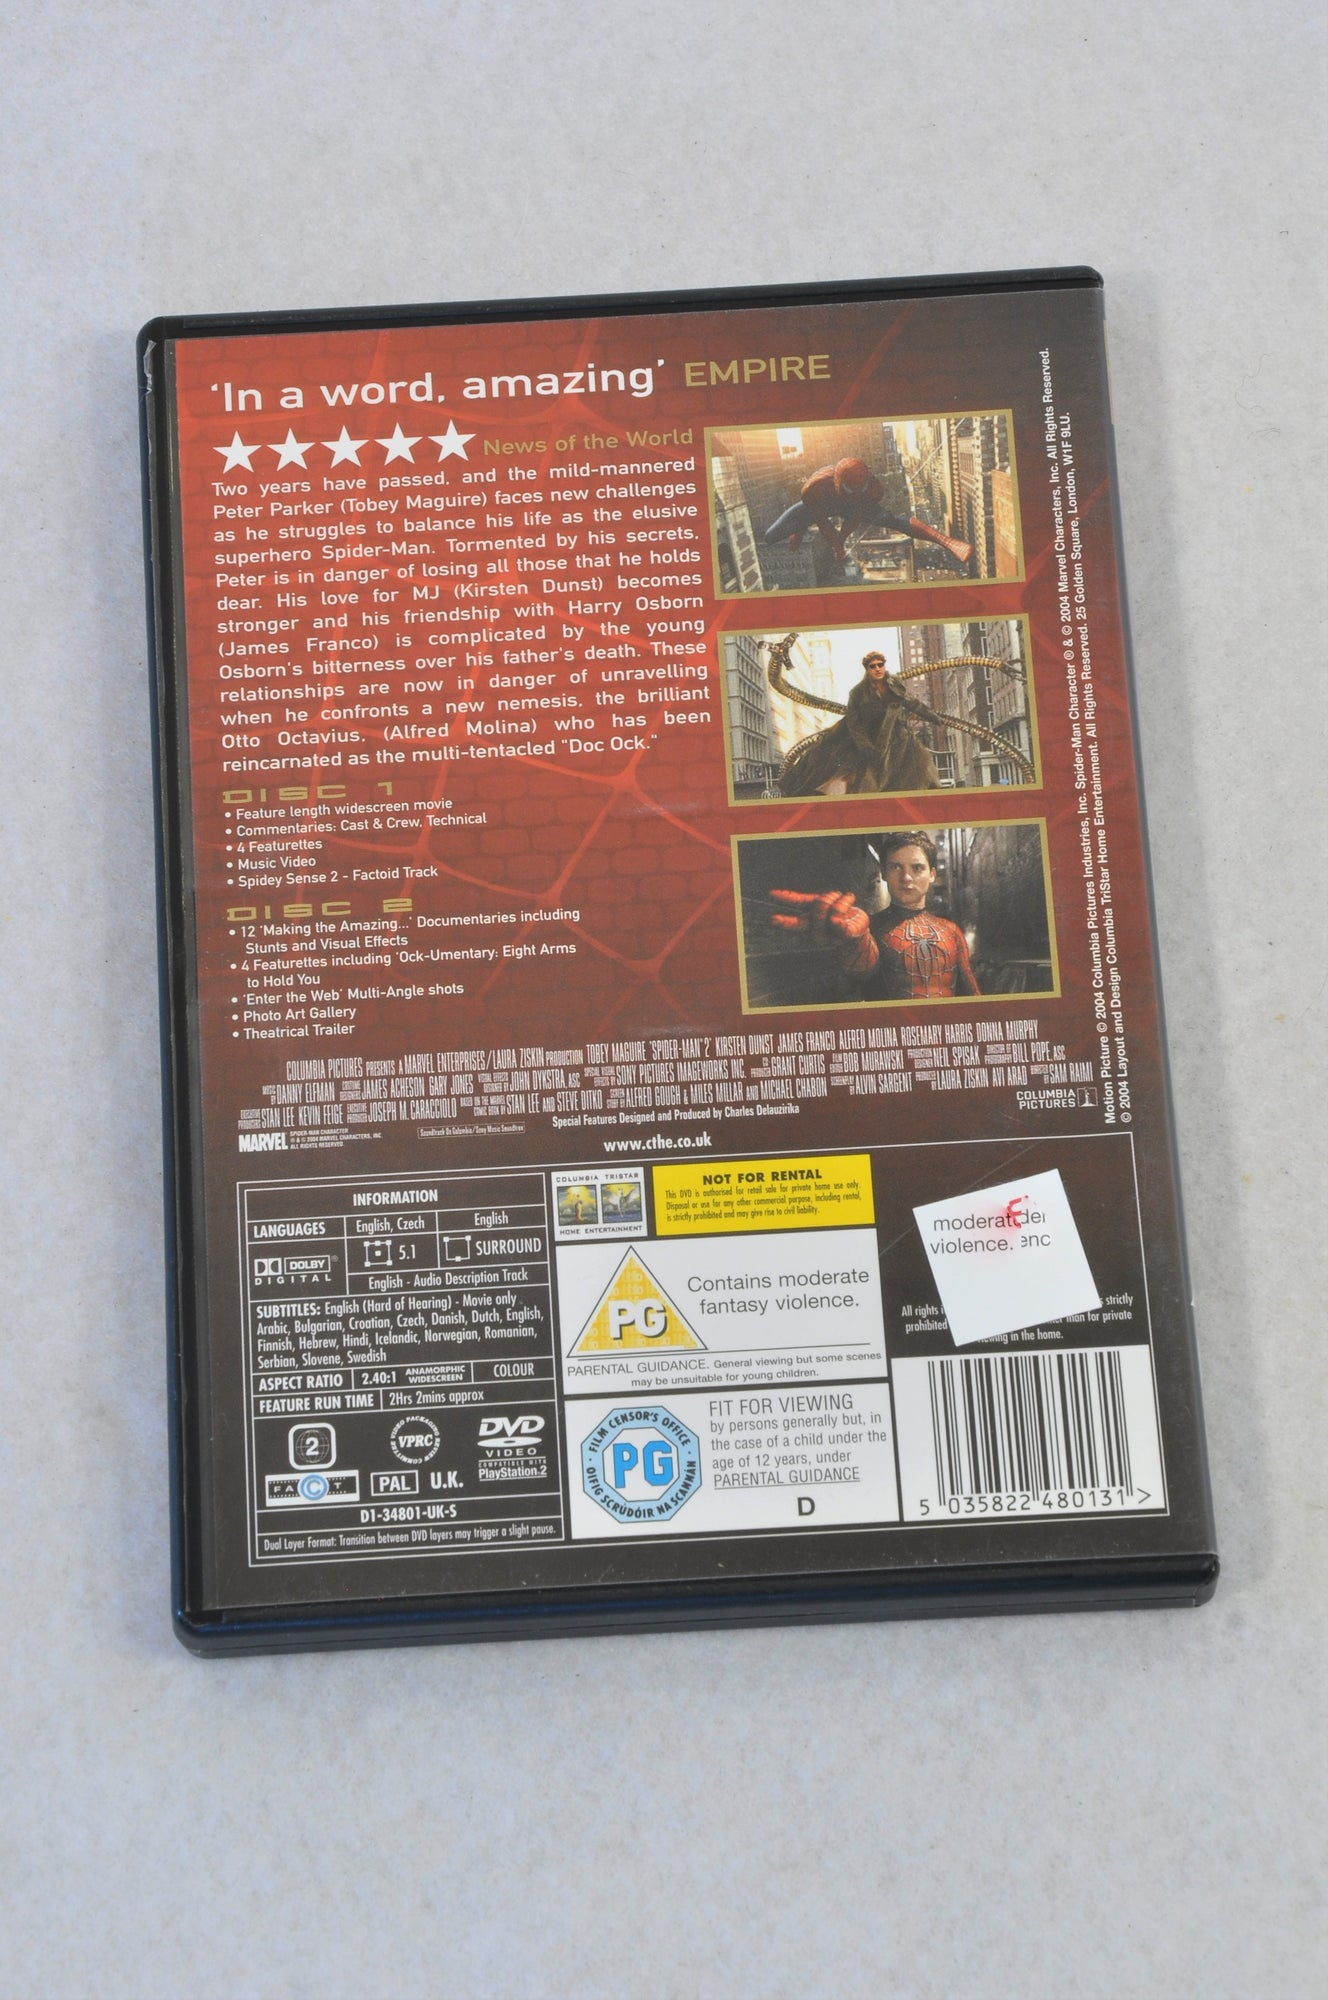 Columbia Spider-Man 2 DVD